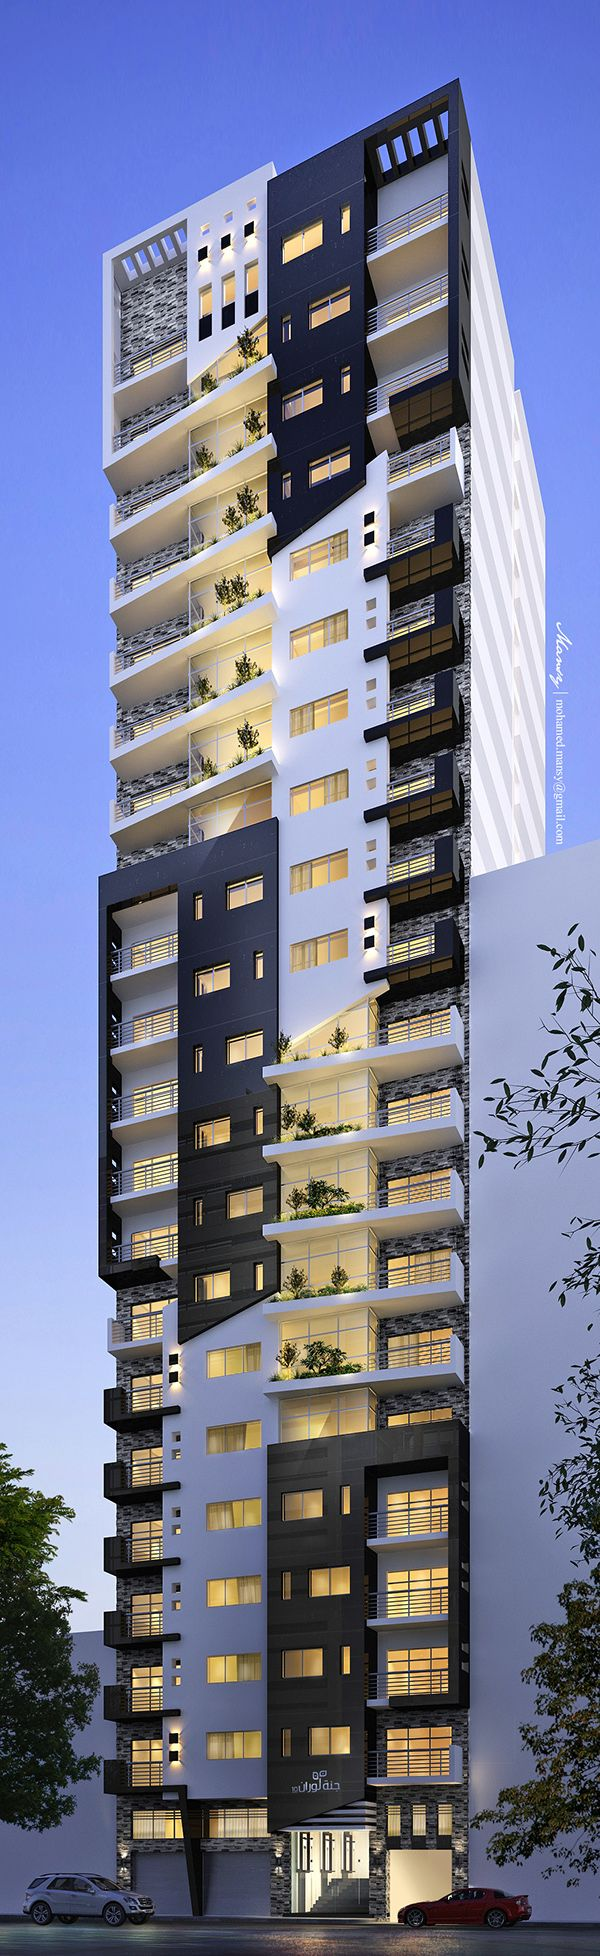 exacta imoveis: projetos para conhecer... Loran High-rise Residential Apartment Building on Behance